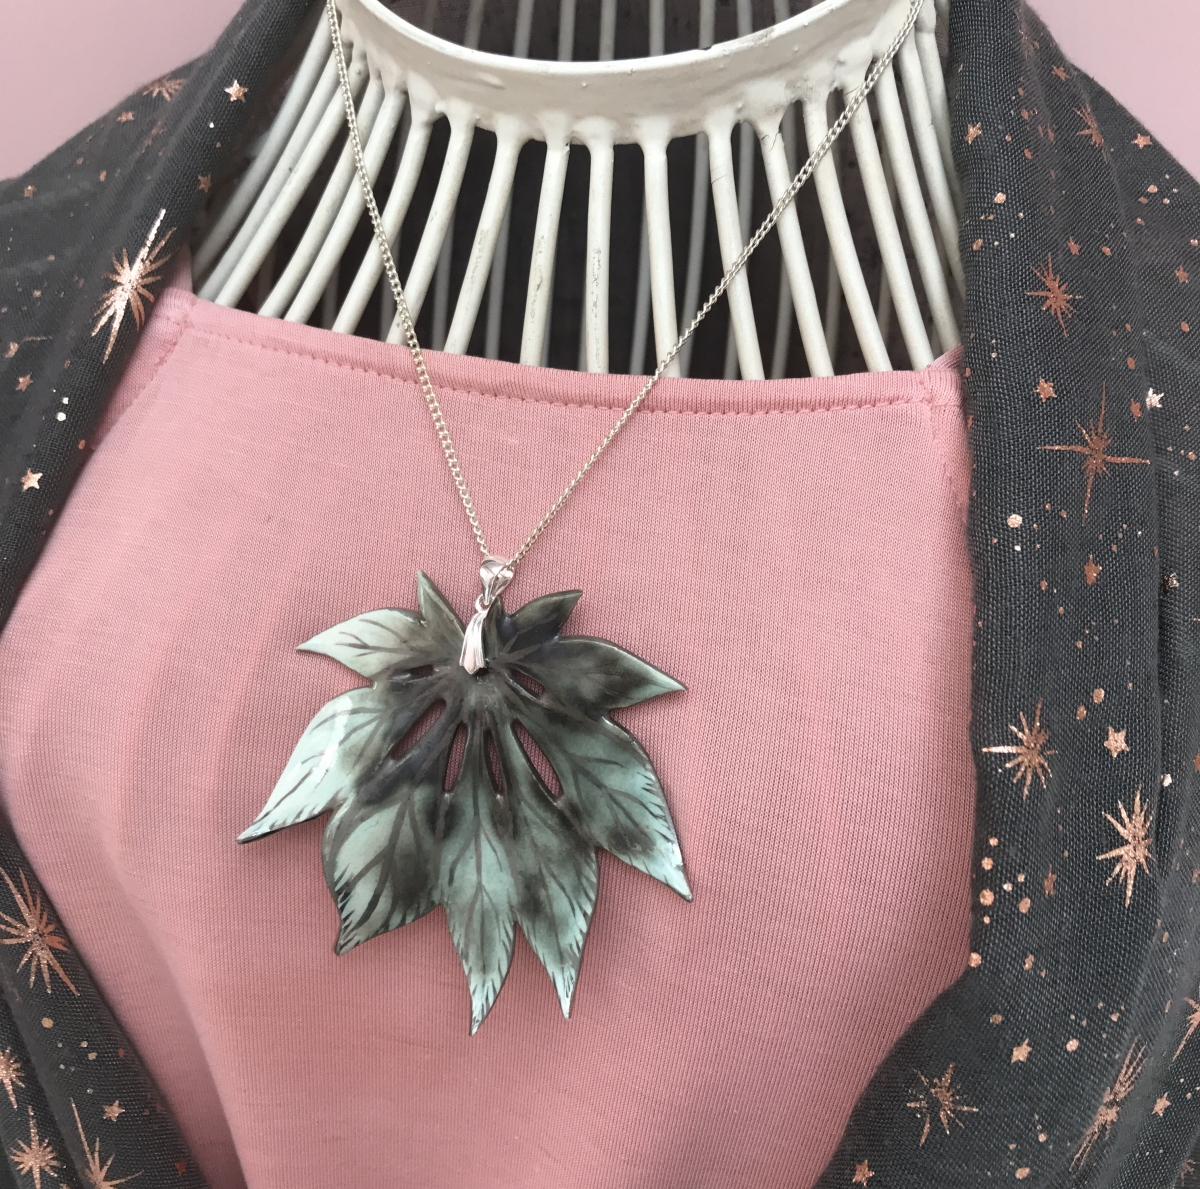 Ceramic Leaf Pendant by Sonya Ceramic Art - Ceramics Inspired By Nature